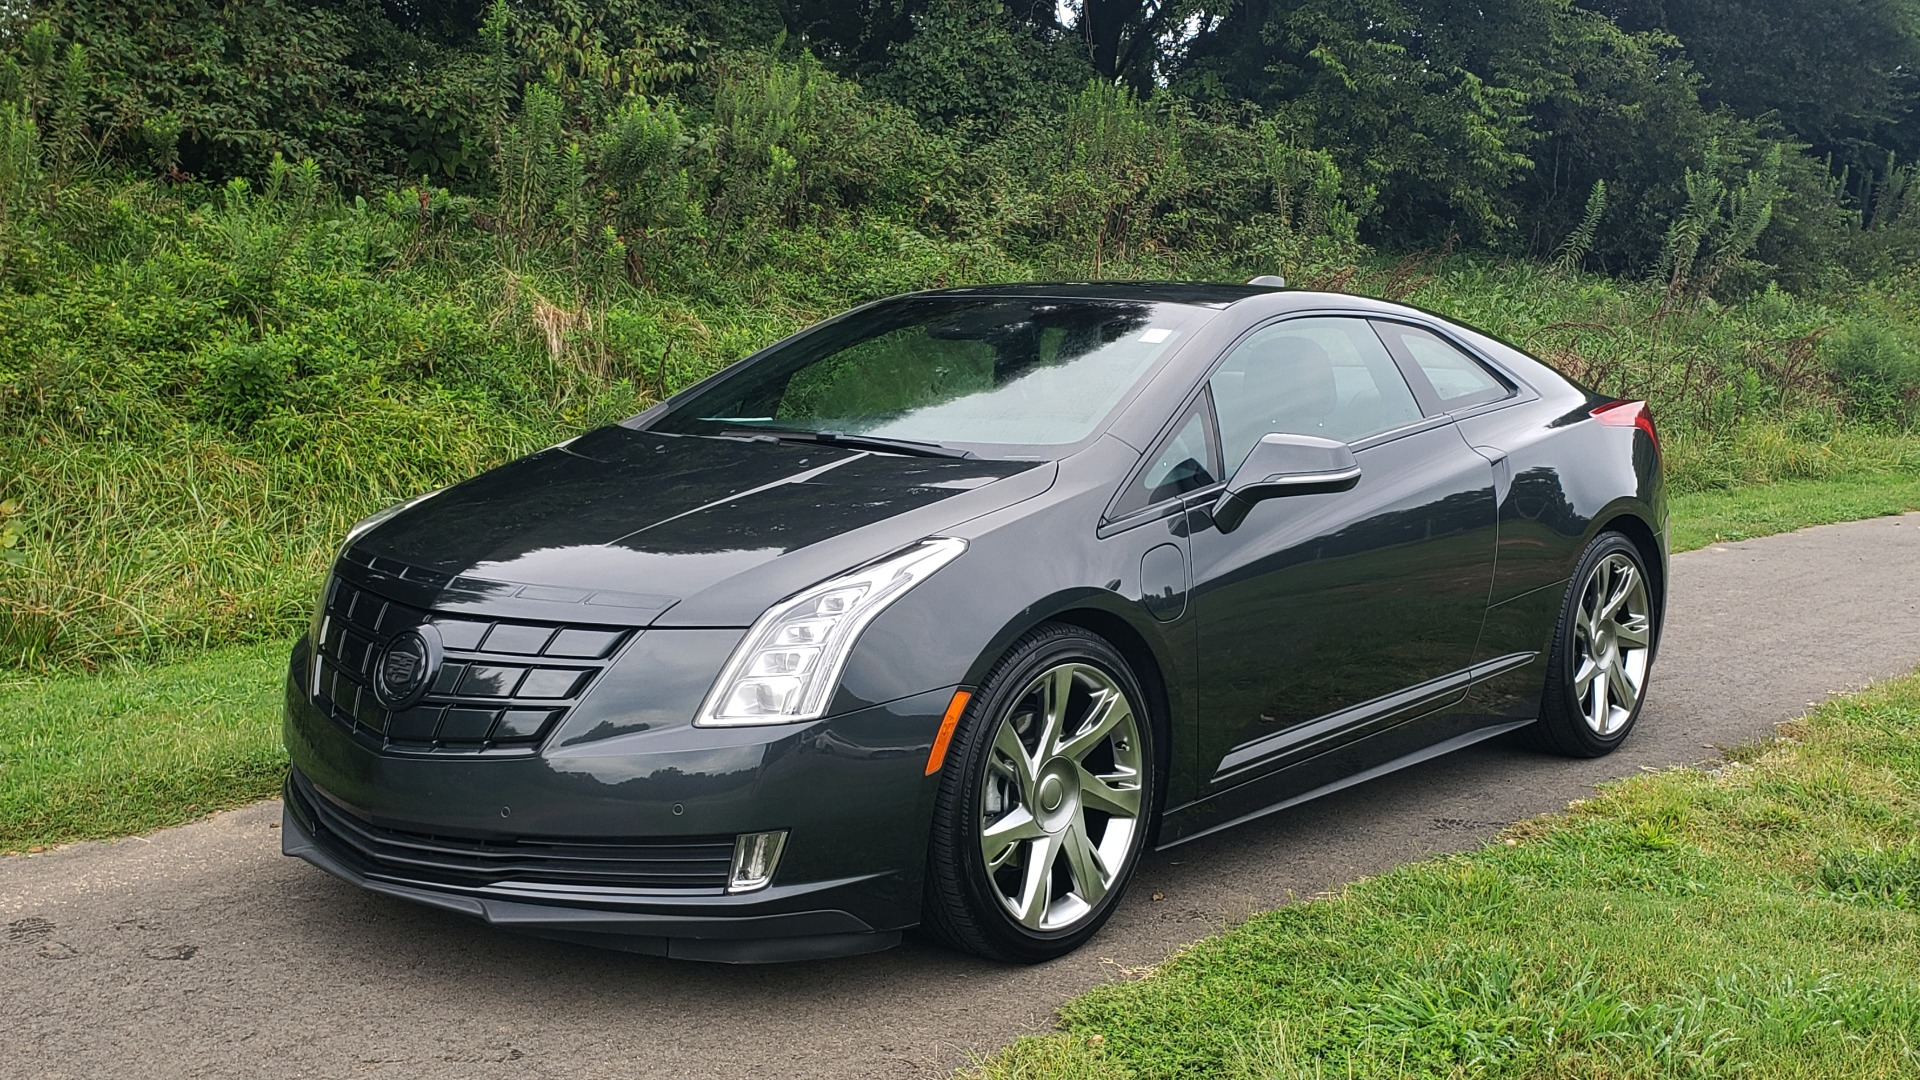 Used 2014 Cadillac ELR 2DR COUPE / HYBRID / NAV / BOSE / HEATED SEATS / REARVIEW for sale $34,000 at Formula Imports in Charlotte NC 28227 3